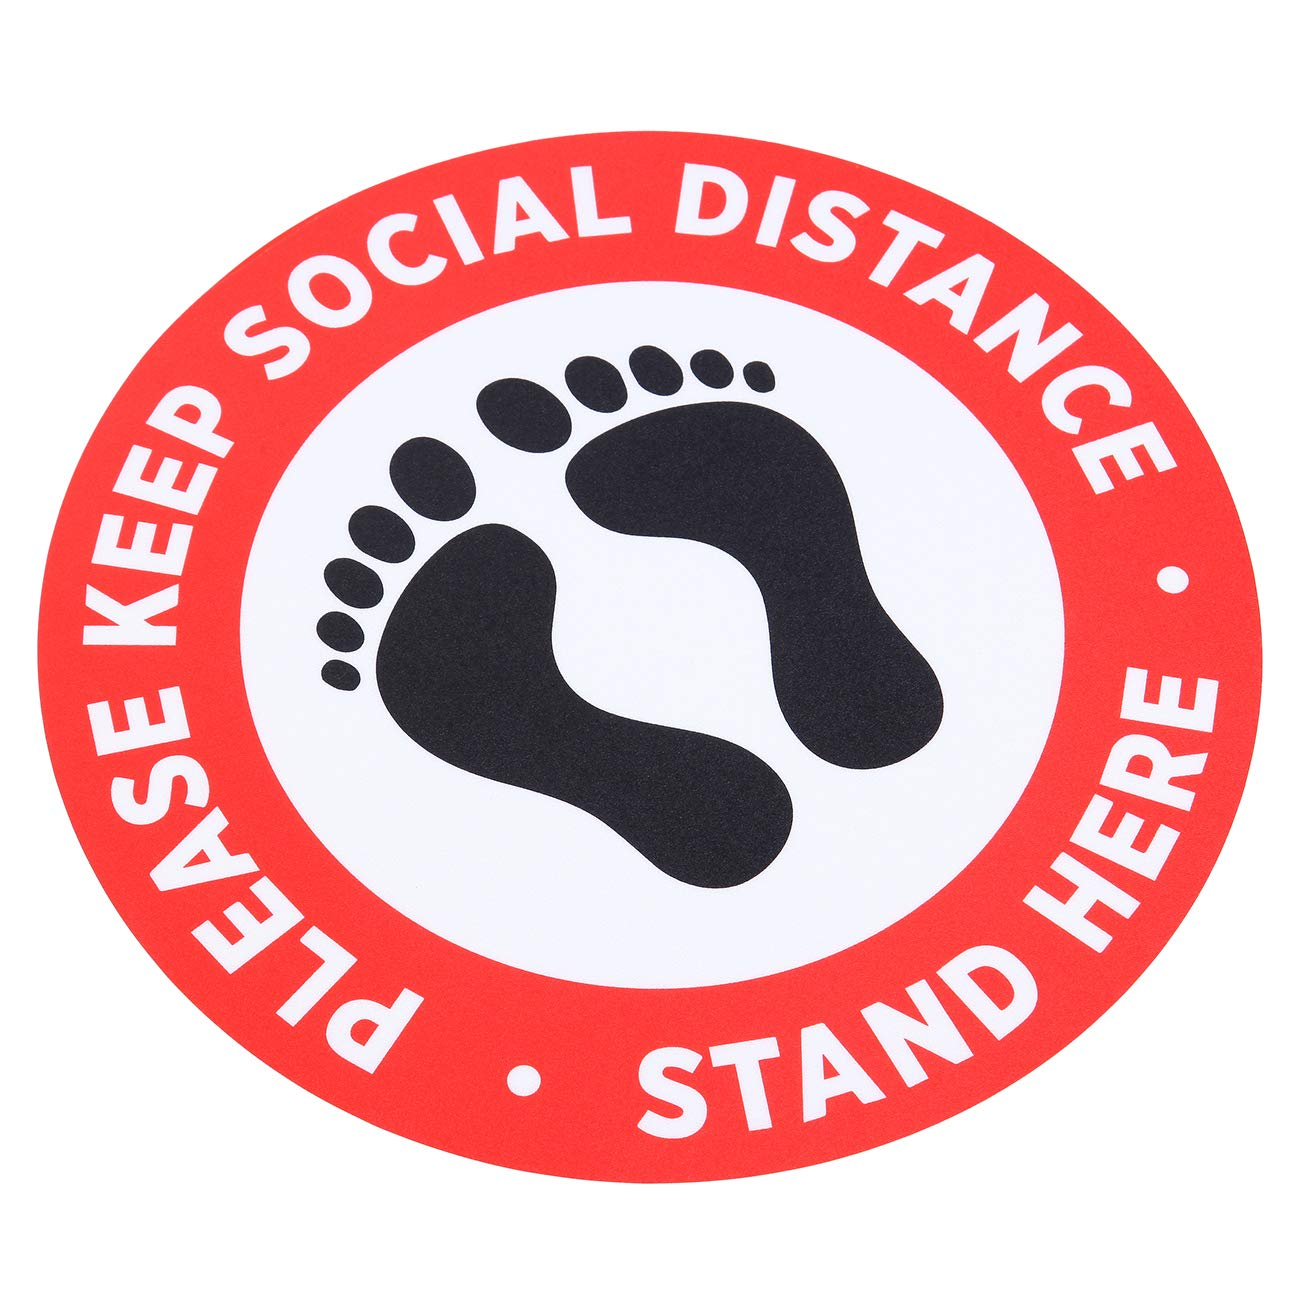 Anti-Slip Ycsst 10 Pack 12 inch Social Distancing Floor Decals- Safety Floor Sign Marker Commercial Grade Maintain 6 Foot Distance 12 Round Made for Walking on. Orange